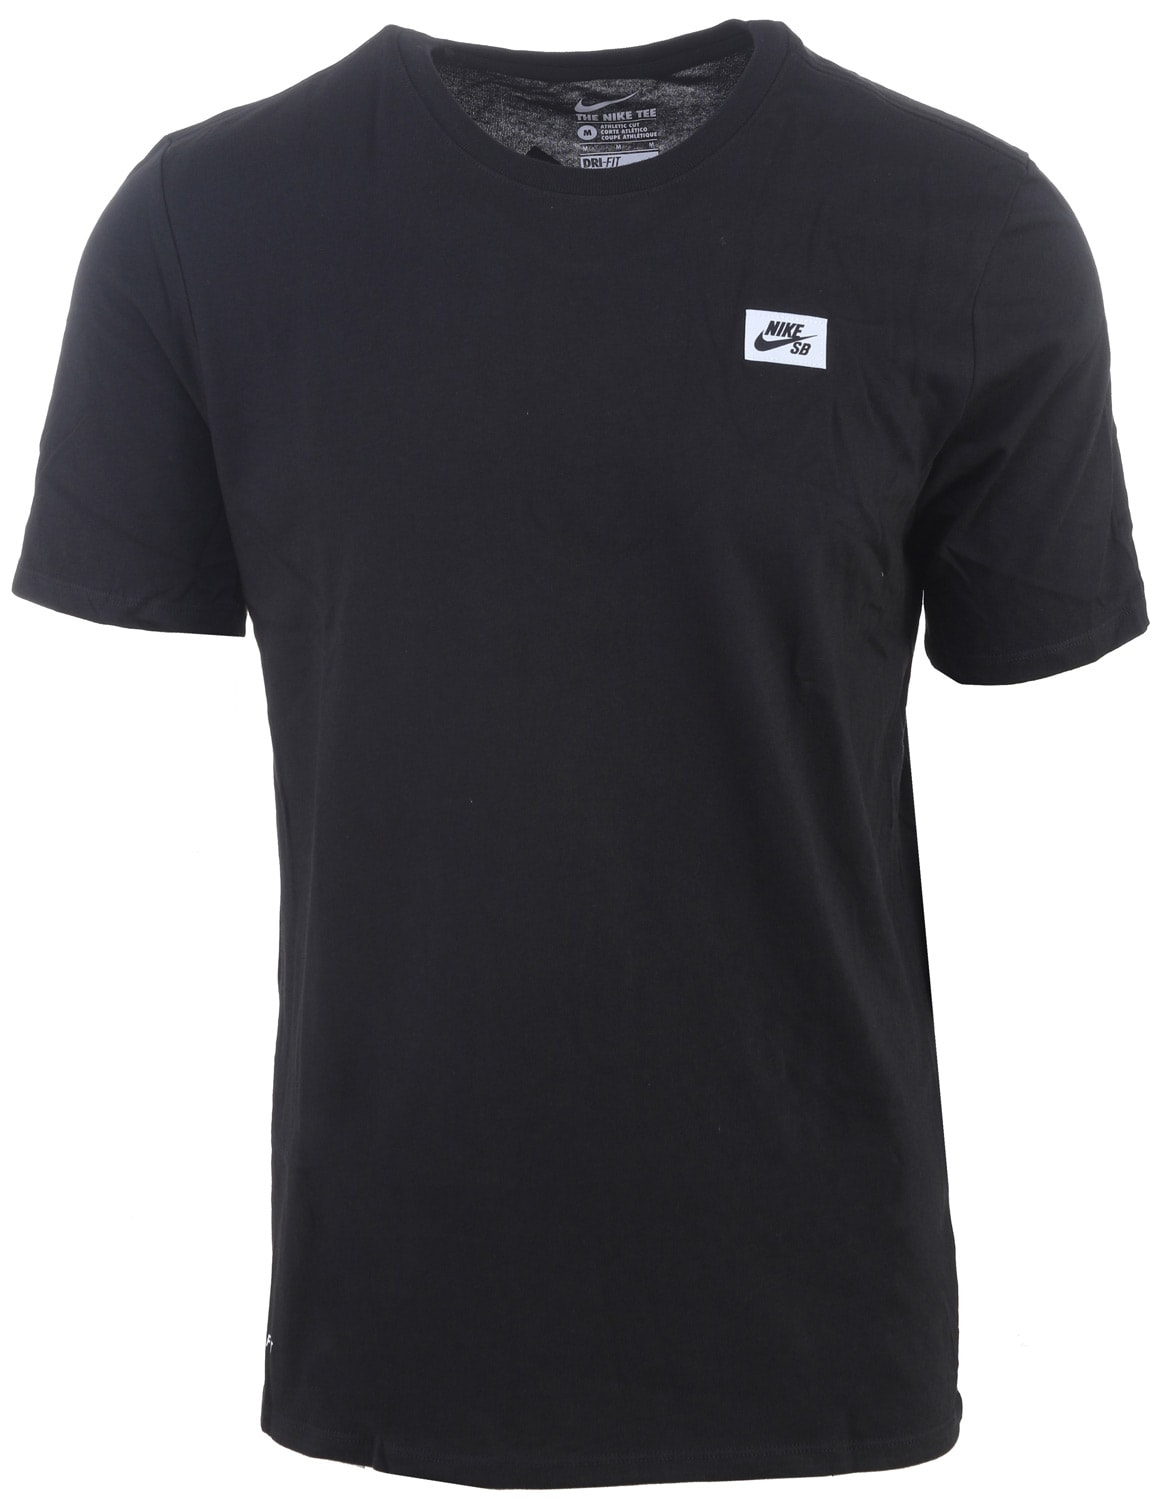 On Sale Nike SB Woven Box Tee T-Shirt up to 45% off